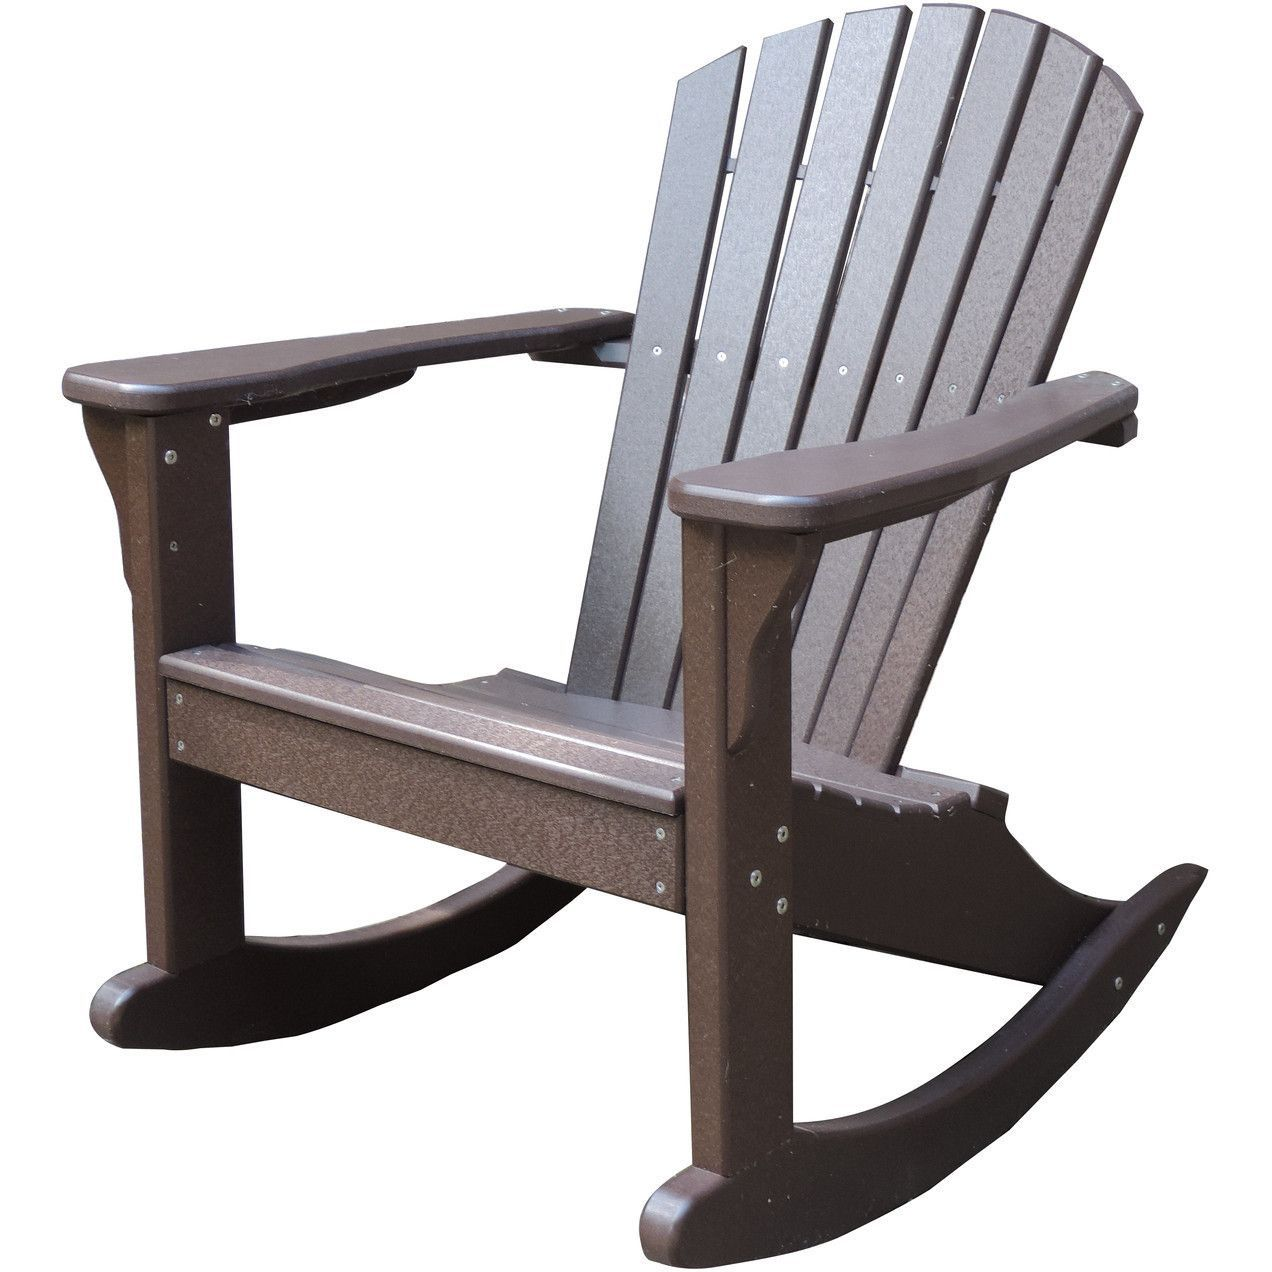 perfect choice outdoor furniture recycled plastic rocking chair